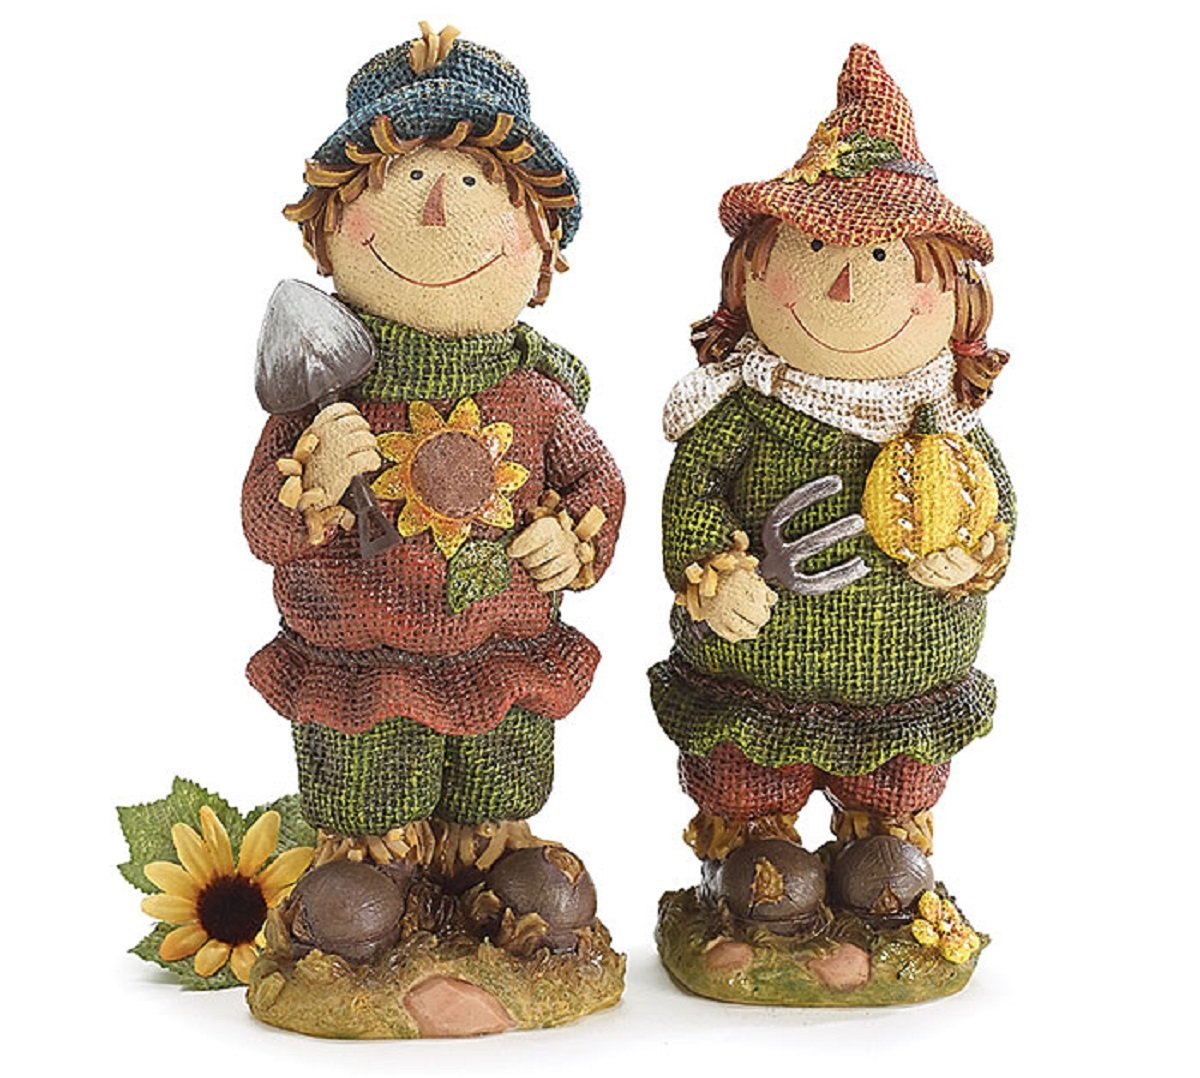 Home Decoration And Furnishing Articles Couple Characters: Thanksgiving Scarecrow Figurines